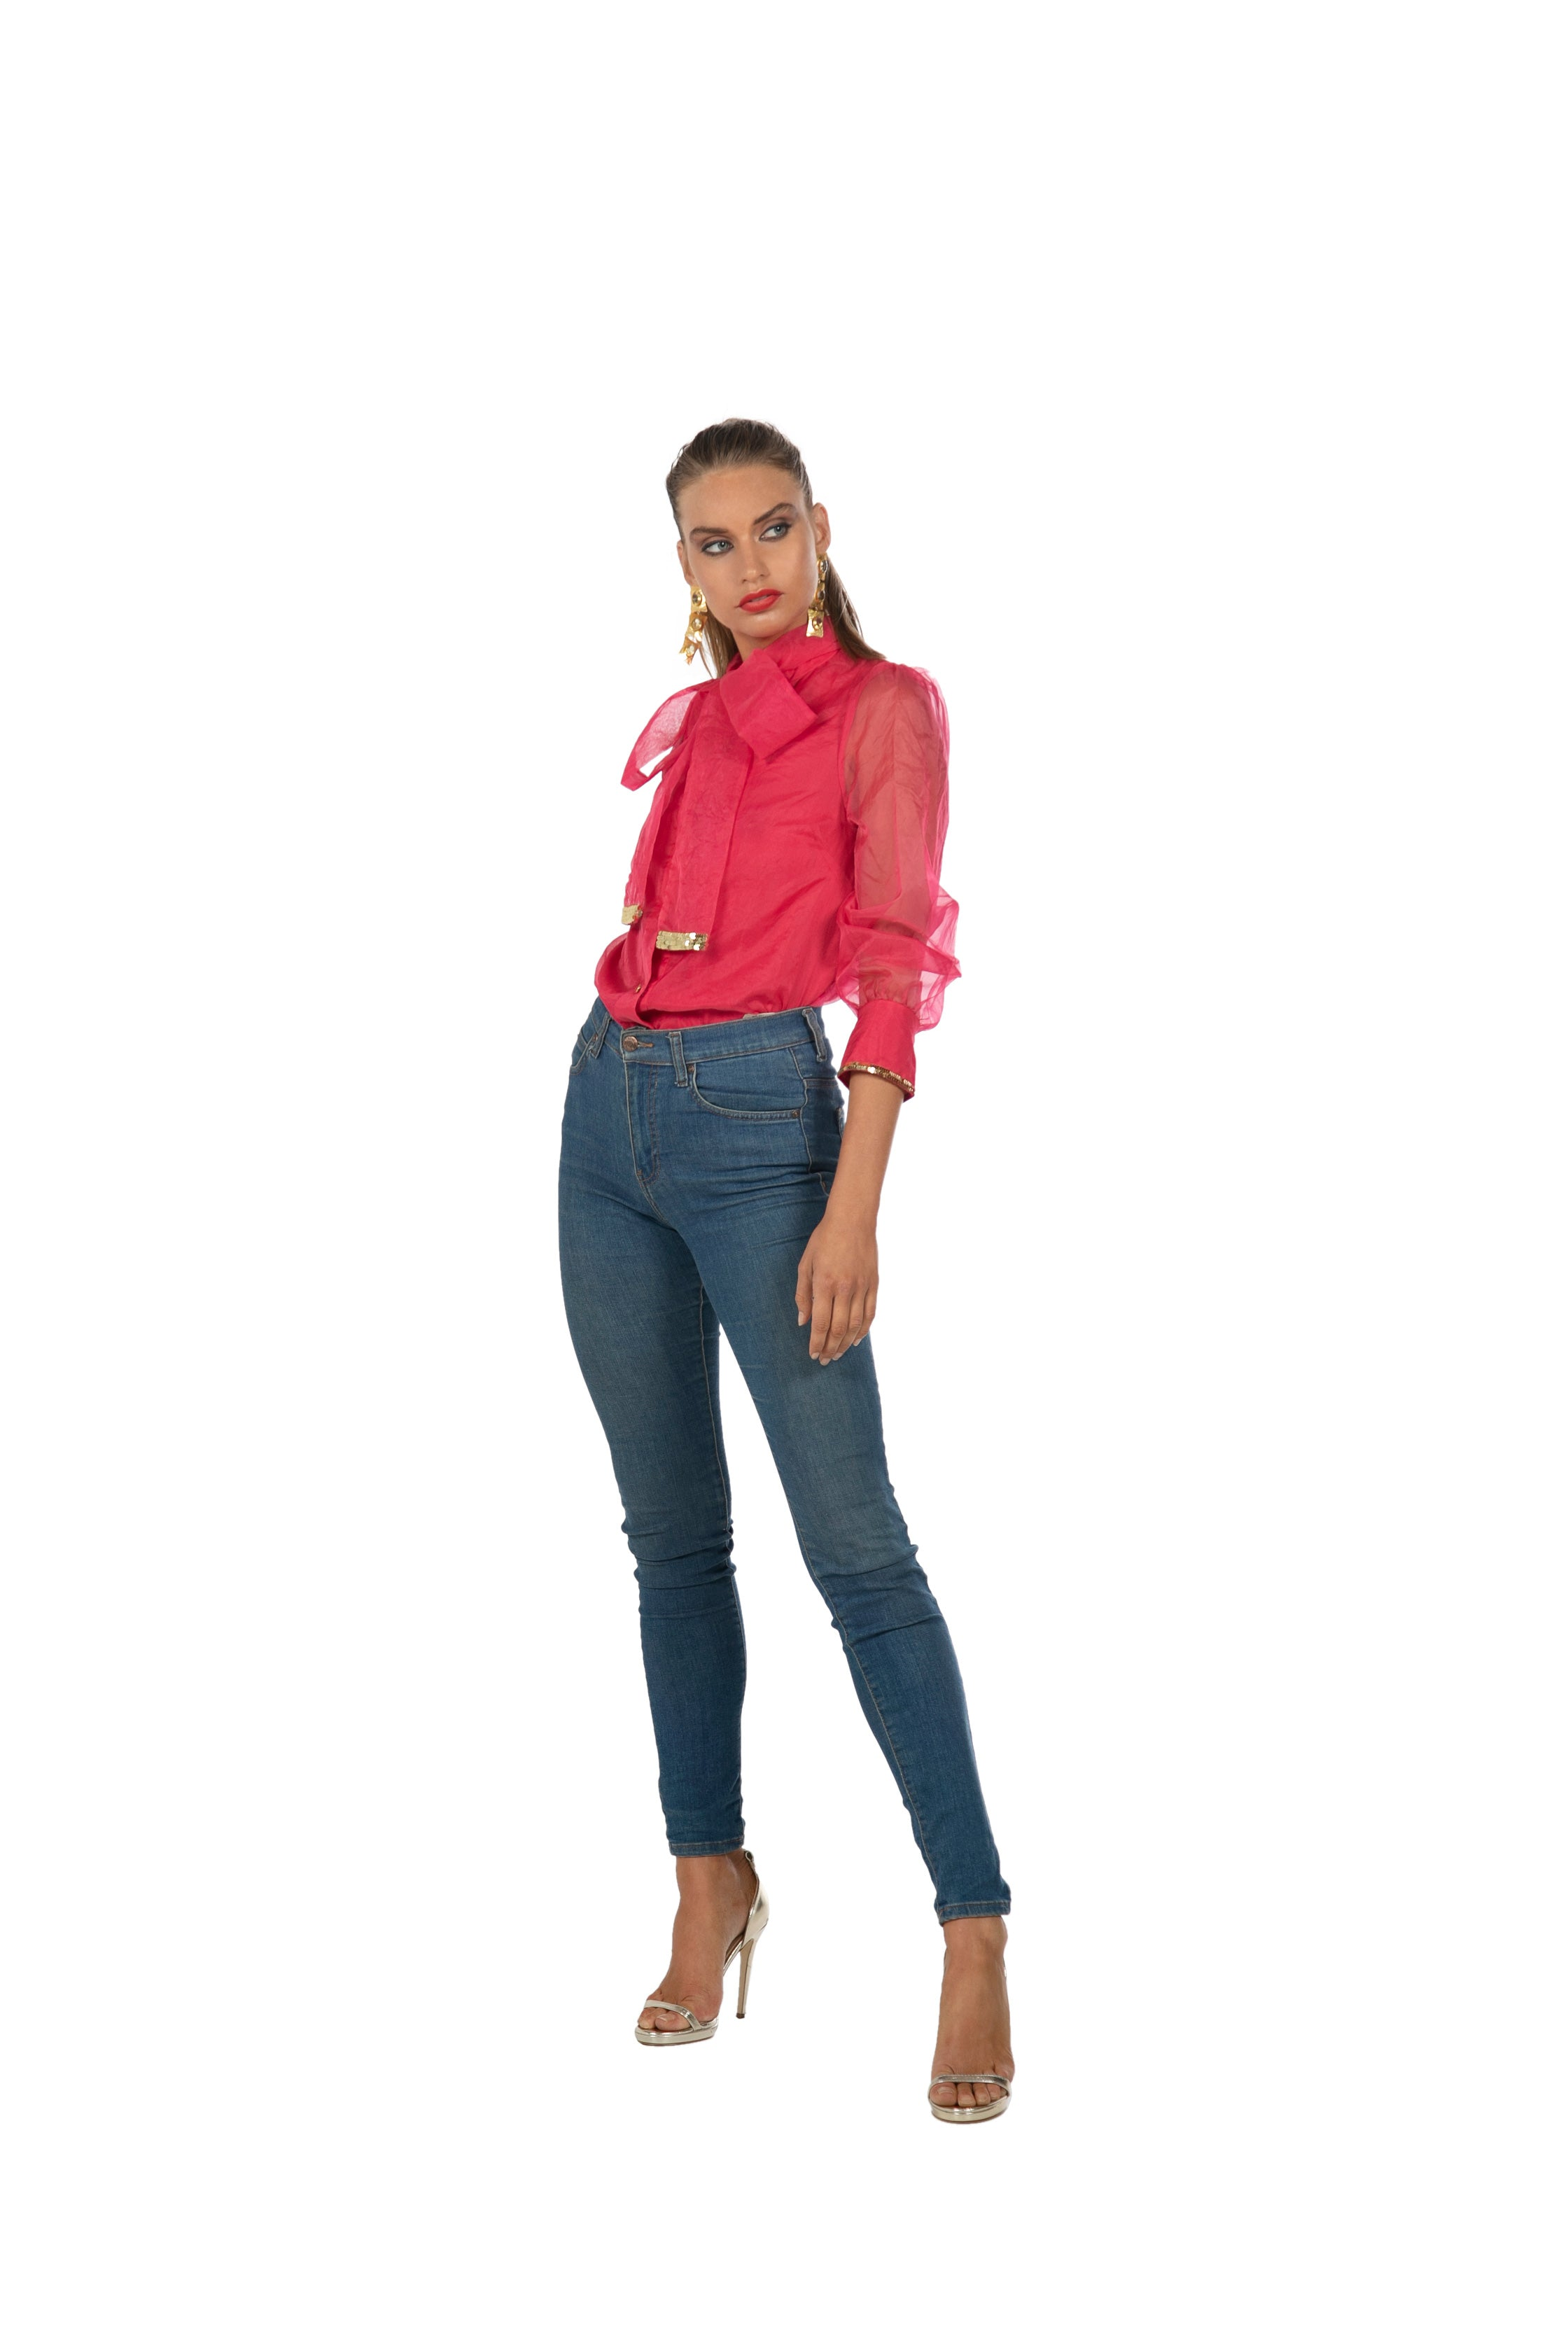 Pink Bow Blouse by Bonita Collective